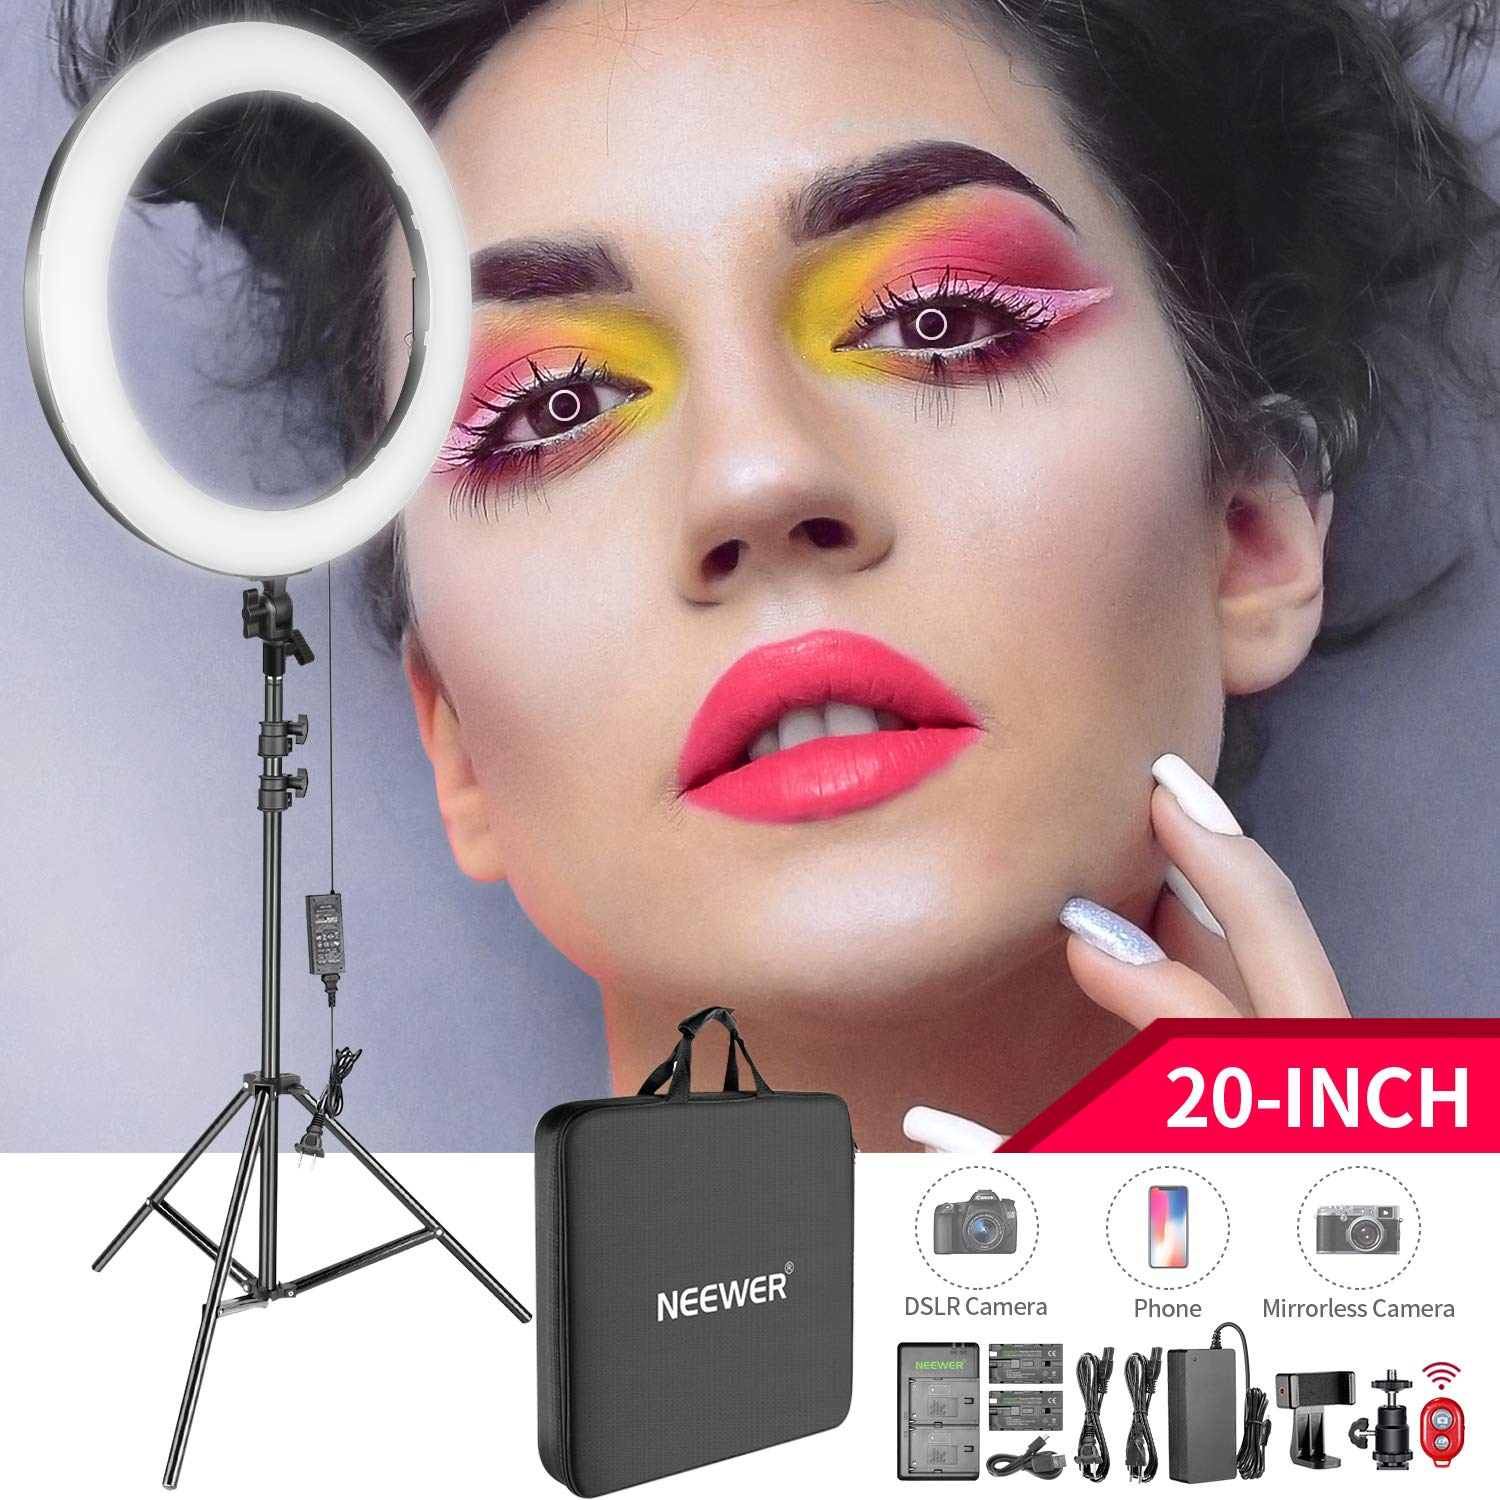 Neewer 20-inch LED Ring Light Kit for Makeup Youtube Video Blogger Salon - Adjustable Color Temperature with Battery or DC Power Option, Battery, Charger, AC Adapter, Phone Clamp and Stand Included by Neewer